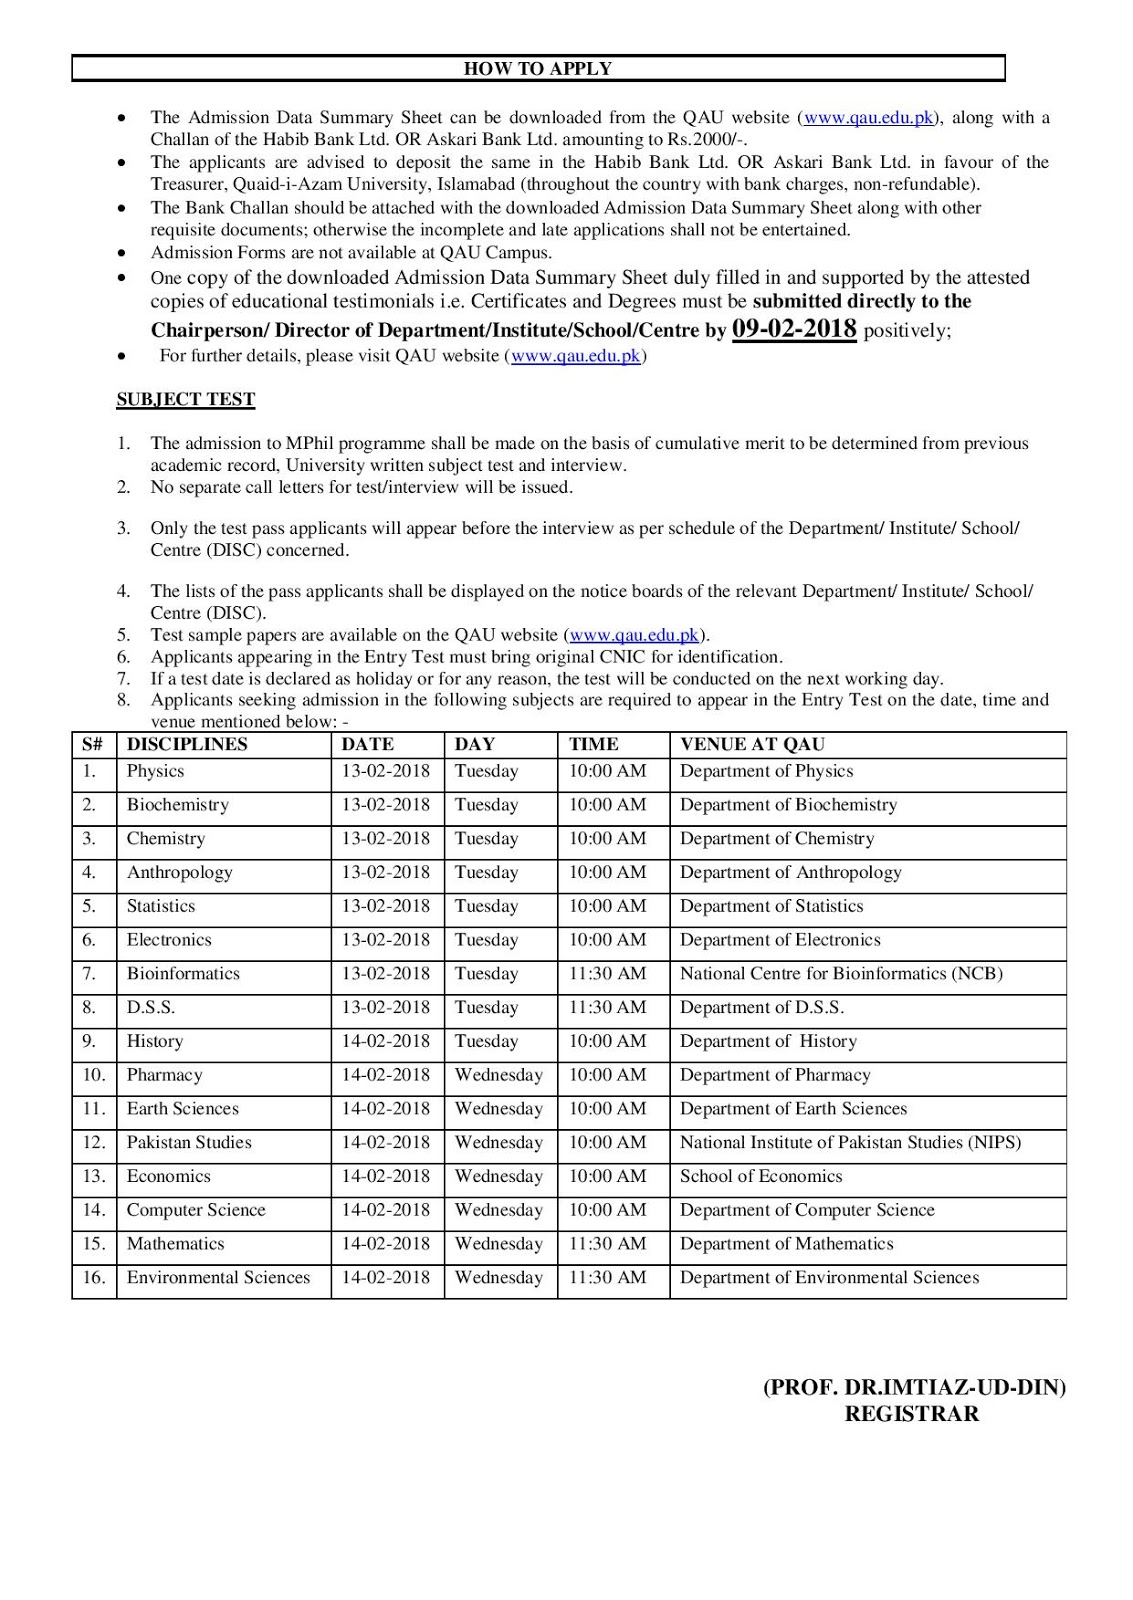 mphilnotice-page-003 Qau Degree Application Form on dept chmistry, bba department, it department, university logo, islamabad logo, earth science, fee structure for bs, itt dr names, faculty male, dr amena zubari, closing merit, islamabad round area, faculty female,